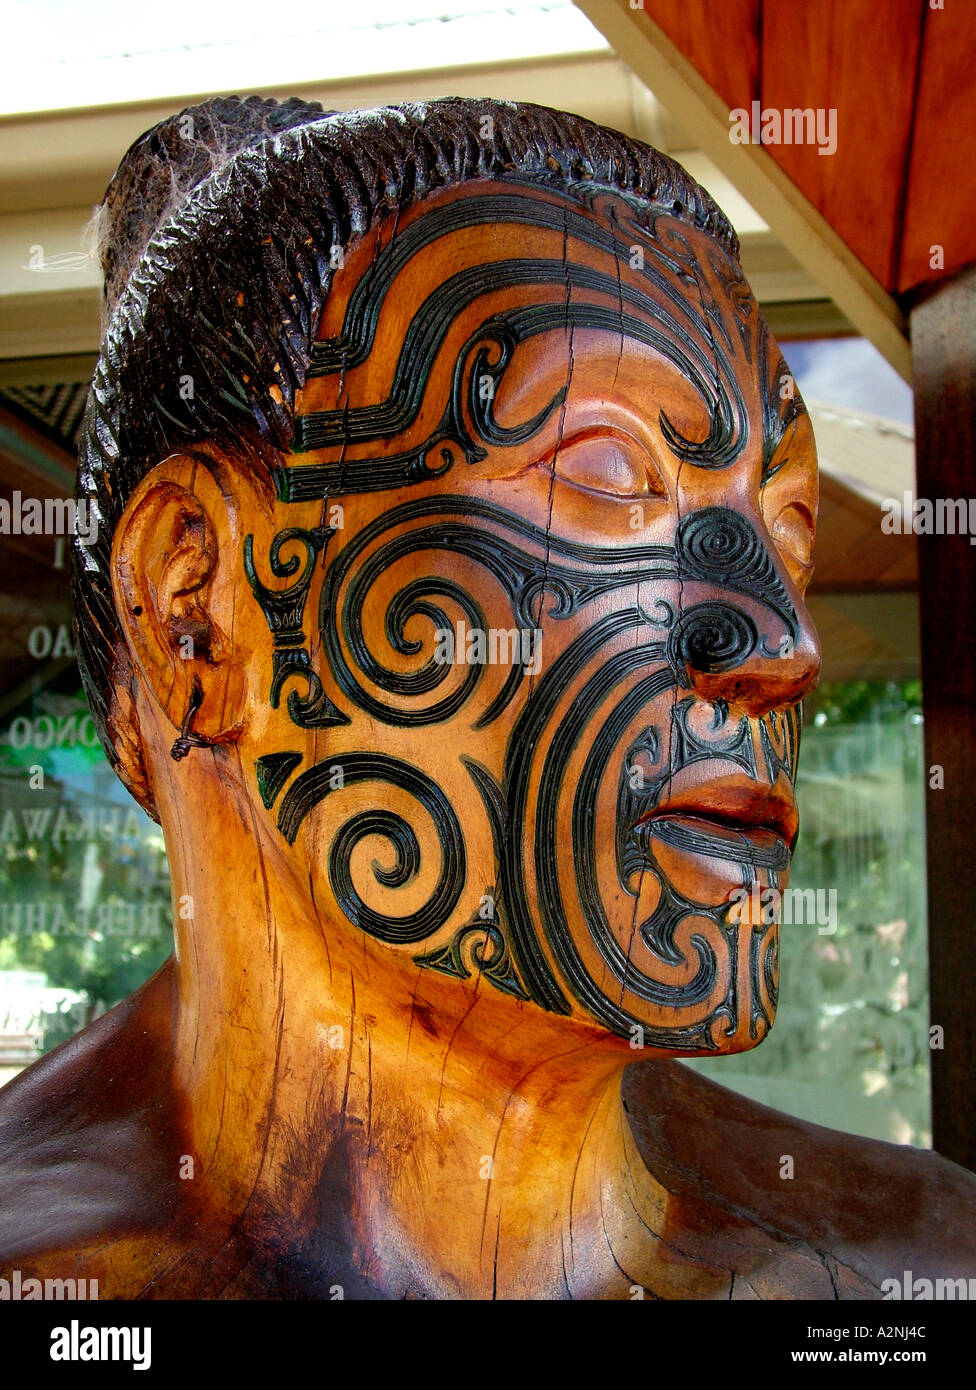 Maori moko tattoo stock photos & maori moko tattoo stock images alamy